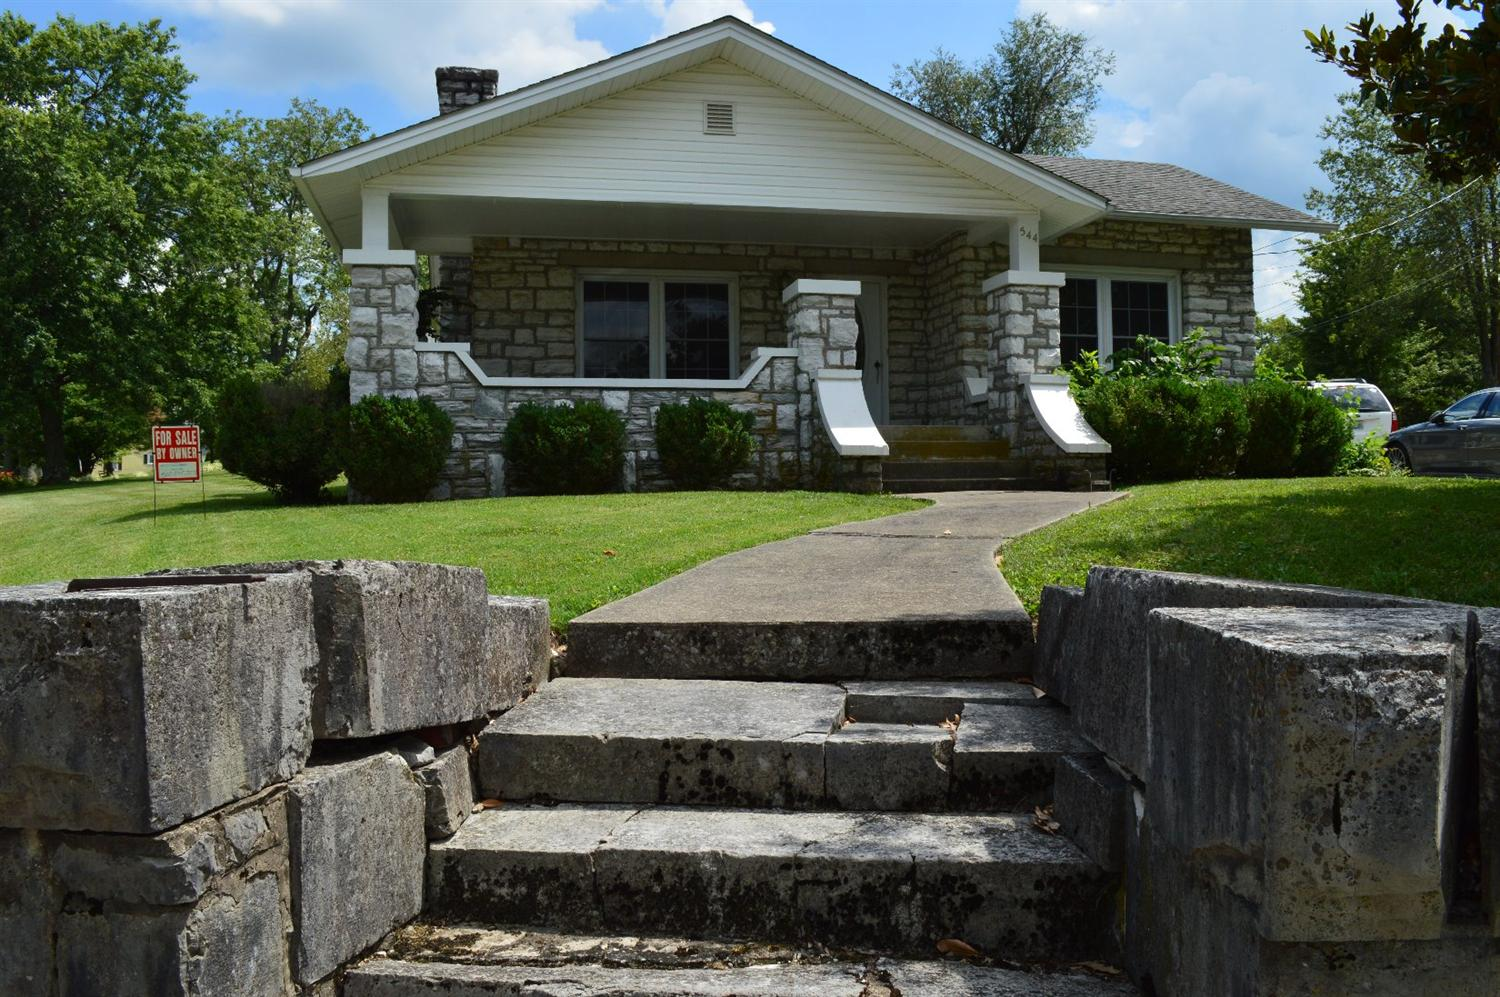 Home For Sale at 255 Pleasant Hill Dr, Harrodsburg, KY 40330